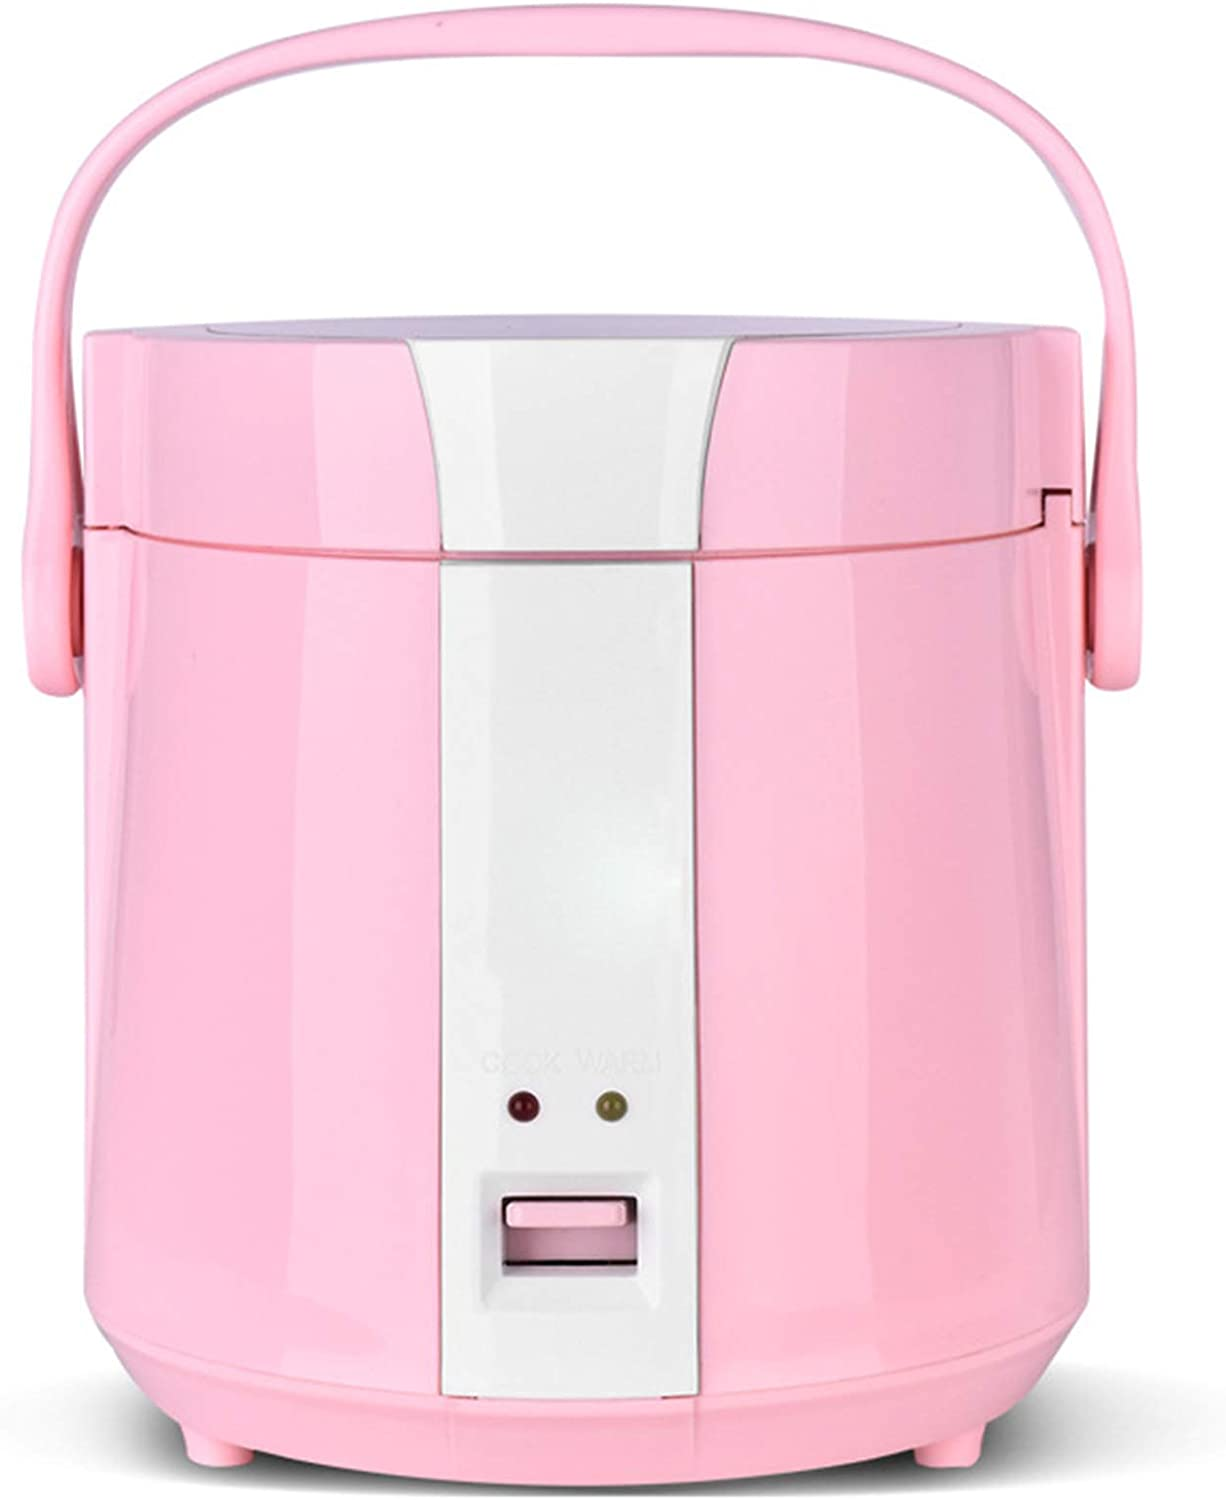 ZYQDRZ Rice Cooker, Mini Portable, Household Pots, Double Spray, Non-Stick Pan Liner, and Portable Handle, 1.2L,Pink